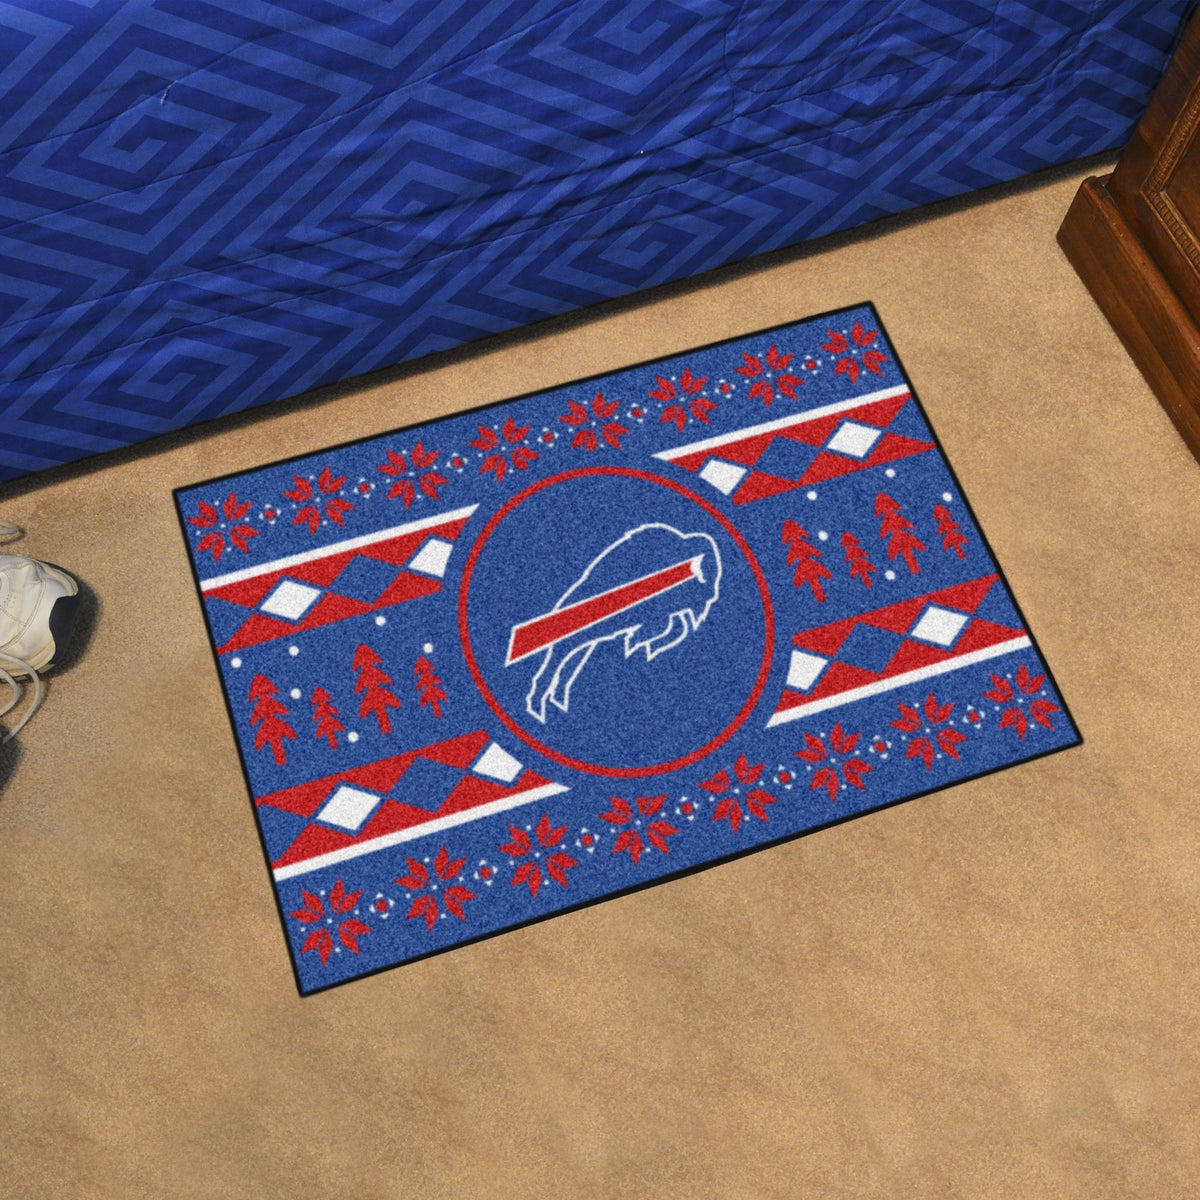 "NFL - Holiday Sweater Starter Mat, 19"" x 30"" NFL Mats, Rectangular Mats, Holiday Sweater Starter Mat, NFL, Home Fan Mats Buffalo Bills"